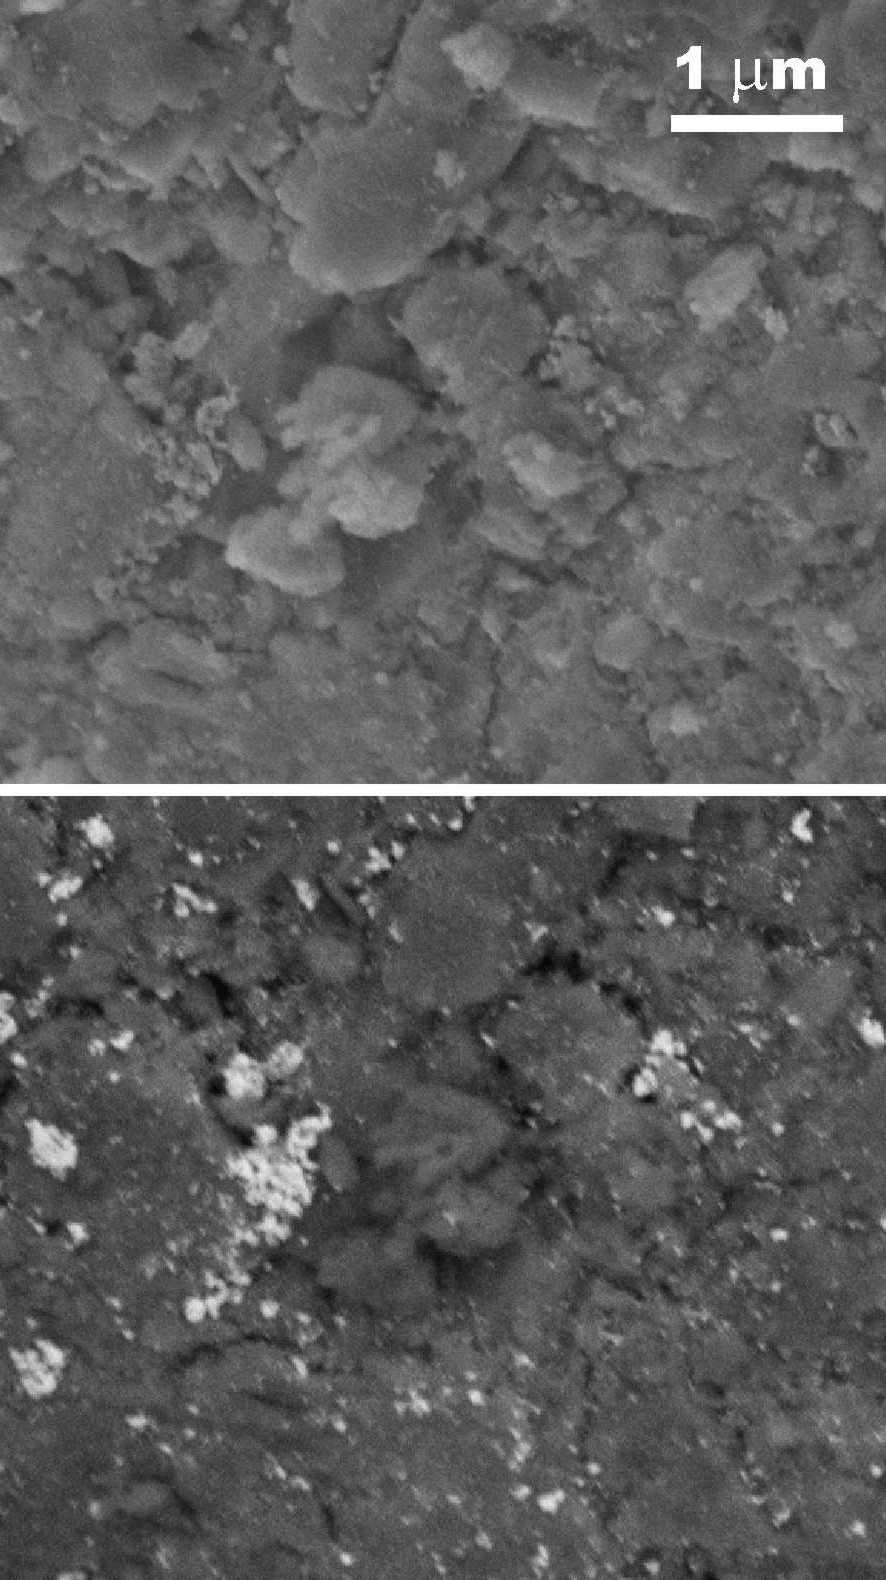 Figure 15: (a) TEM and (b) HAADF-STEM image of Pd balls on silica. The overlap regions are relatively dark in (b) and bright in (b), respectively, due to the increased thickness there.